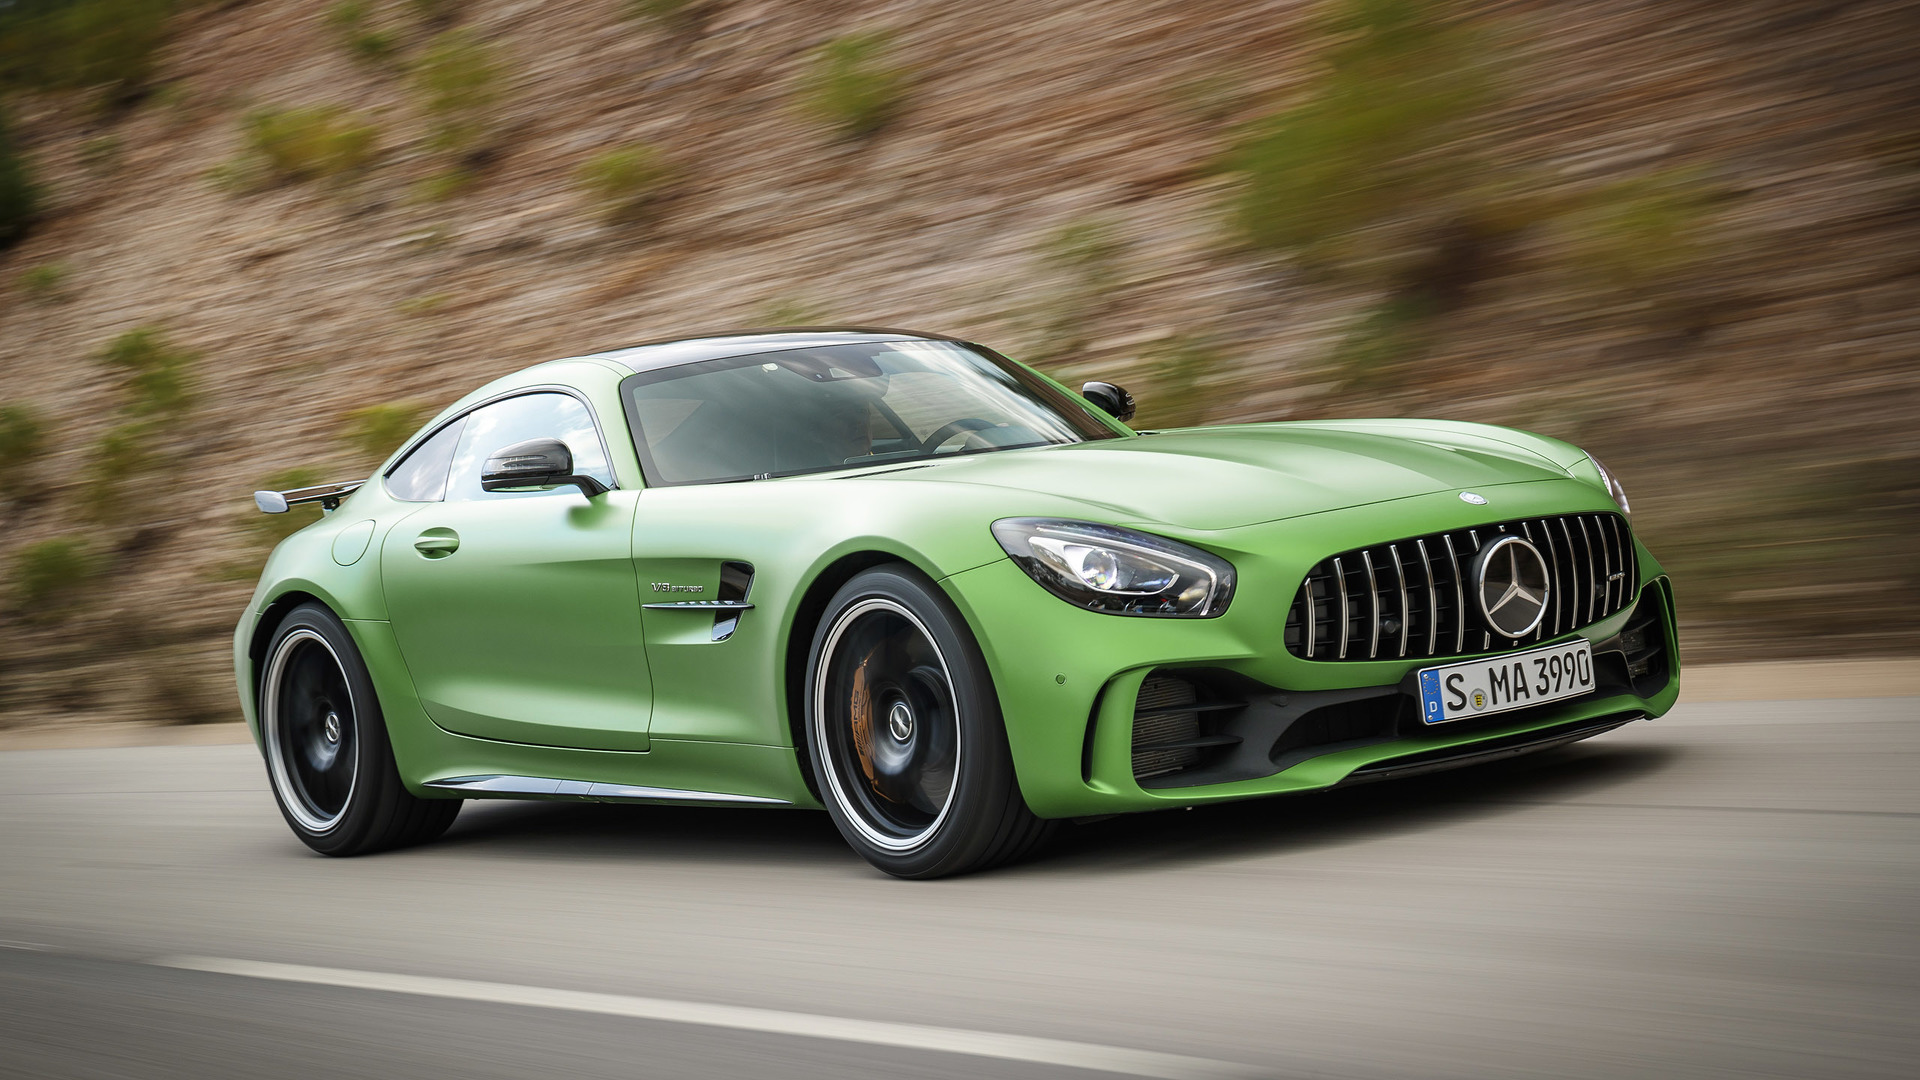 2018 mercedes amg gt r first drive the green monster of for Mercedes benz gtr amg 2017 price